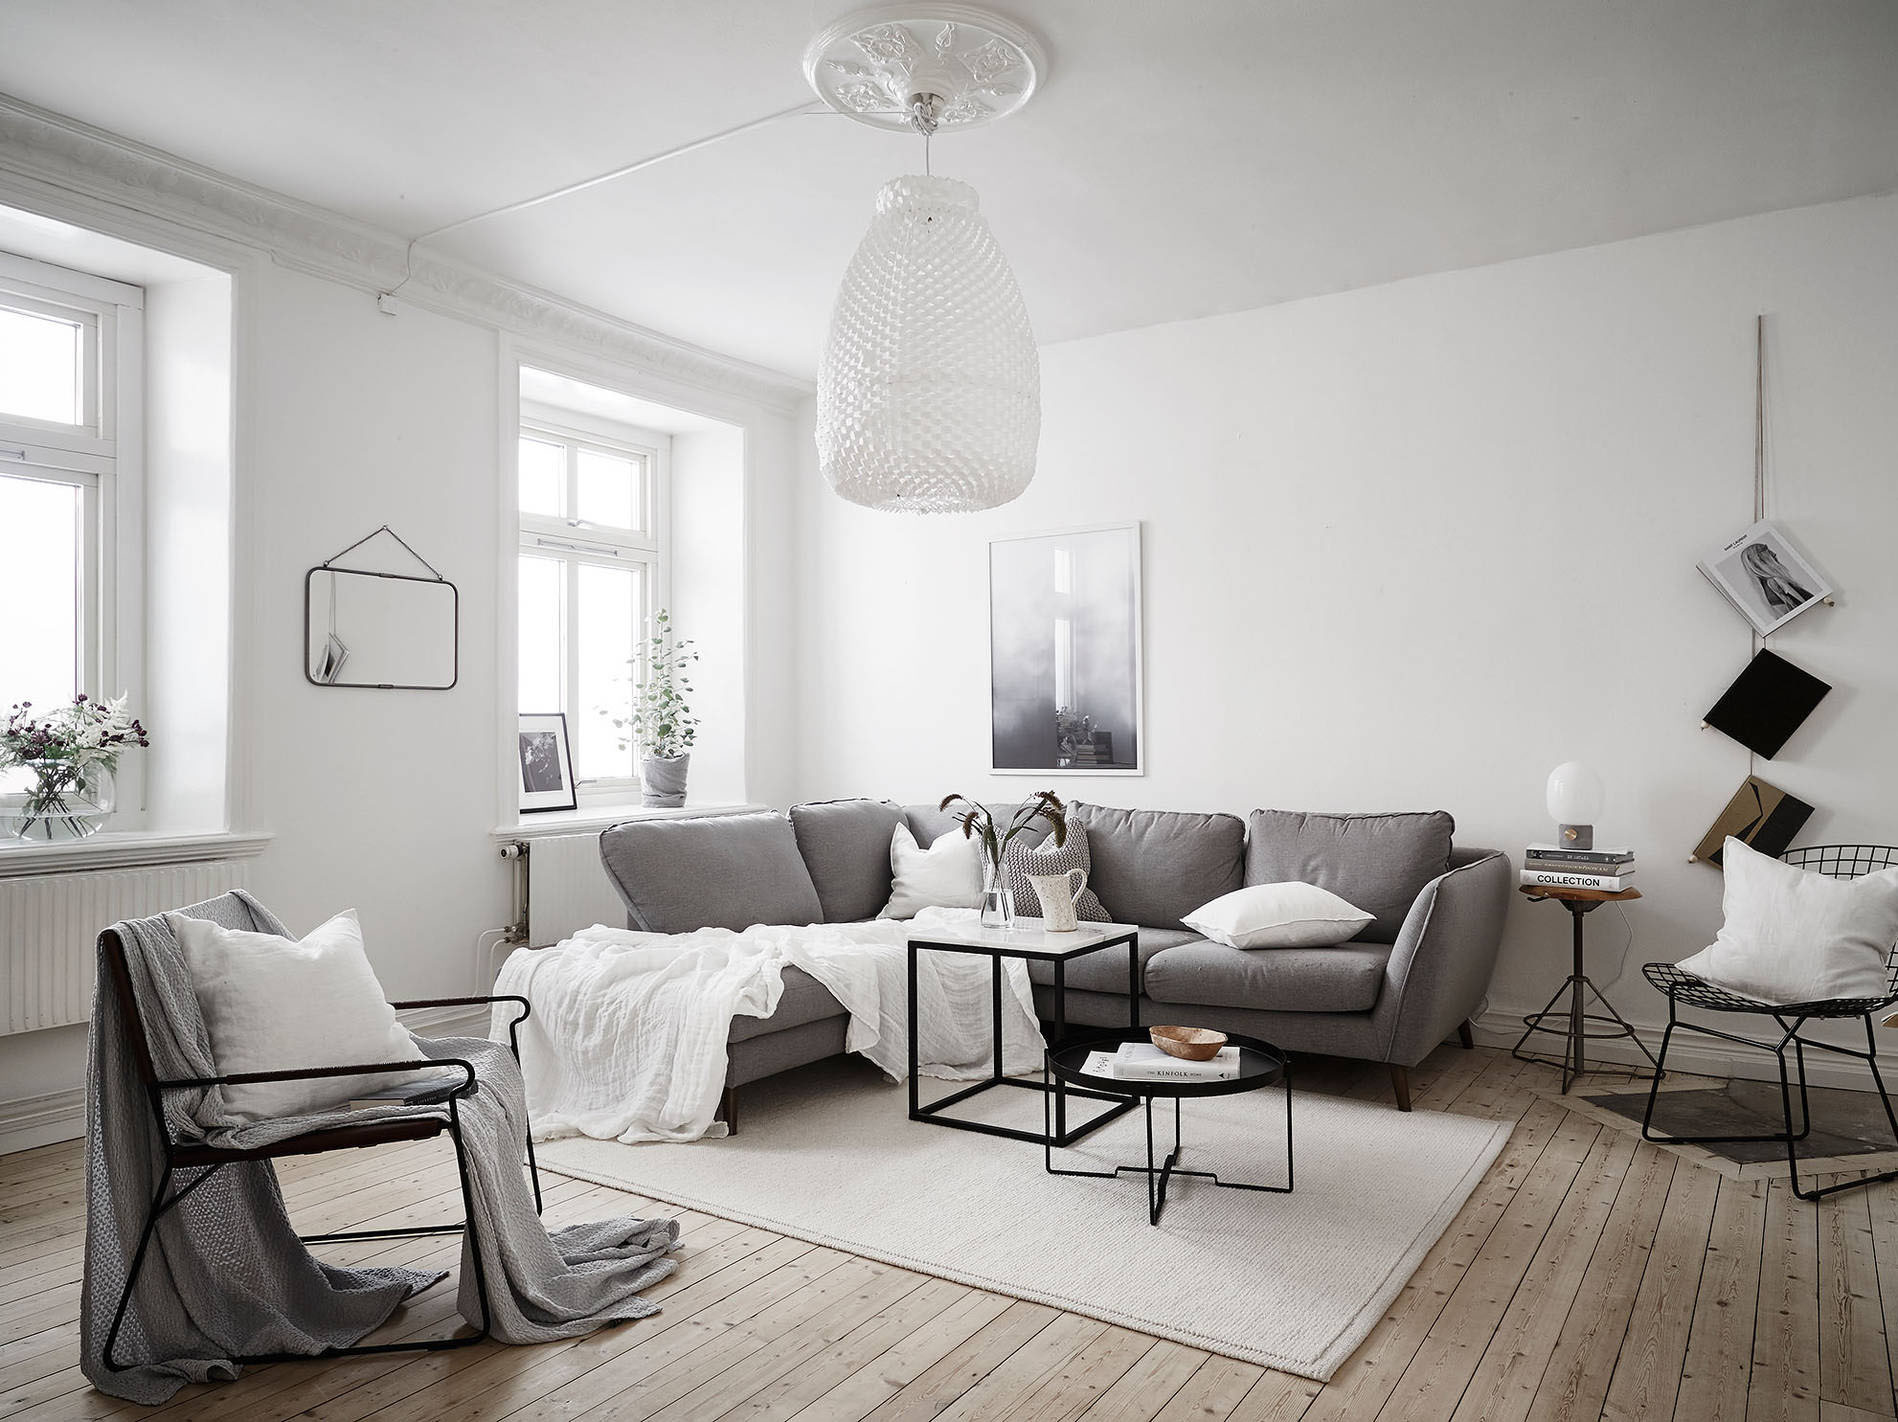 Best ideas about Scandinavian Living Room . Save or Pin Top 10 Tips for Adding Scandinavian Style to Your Home Now.